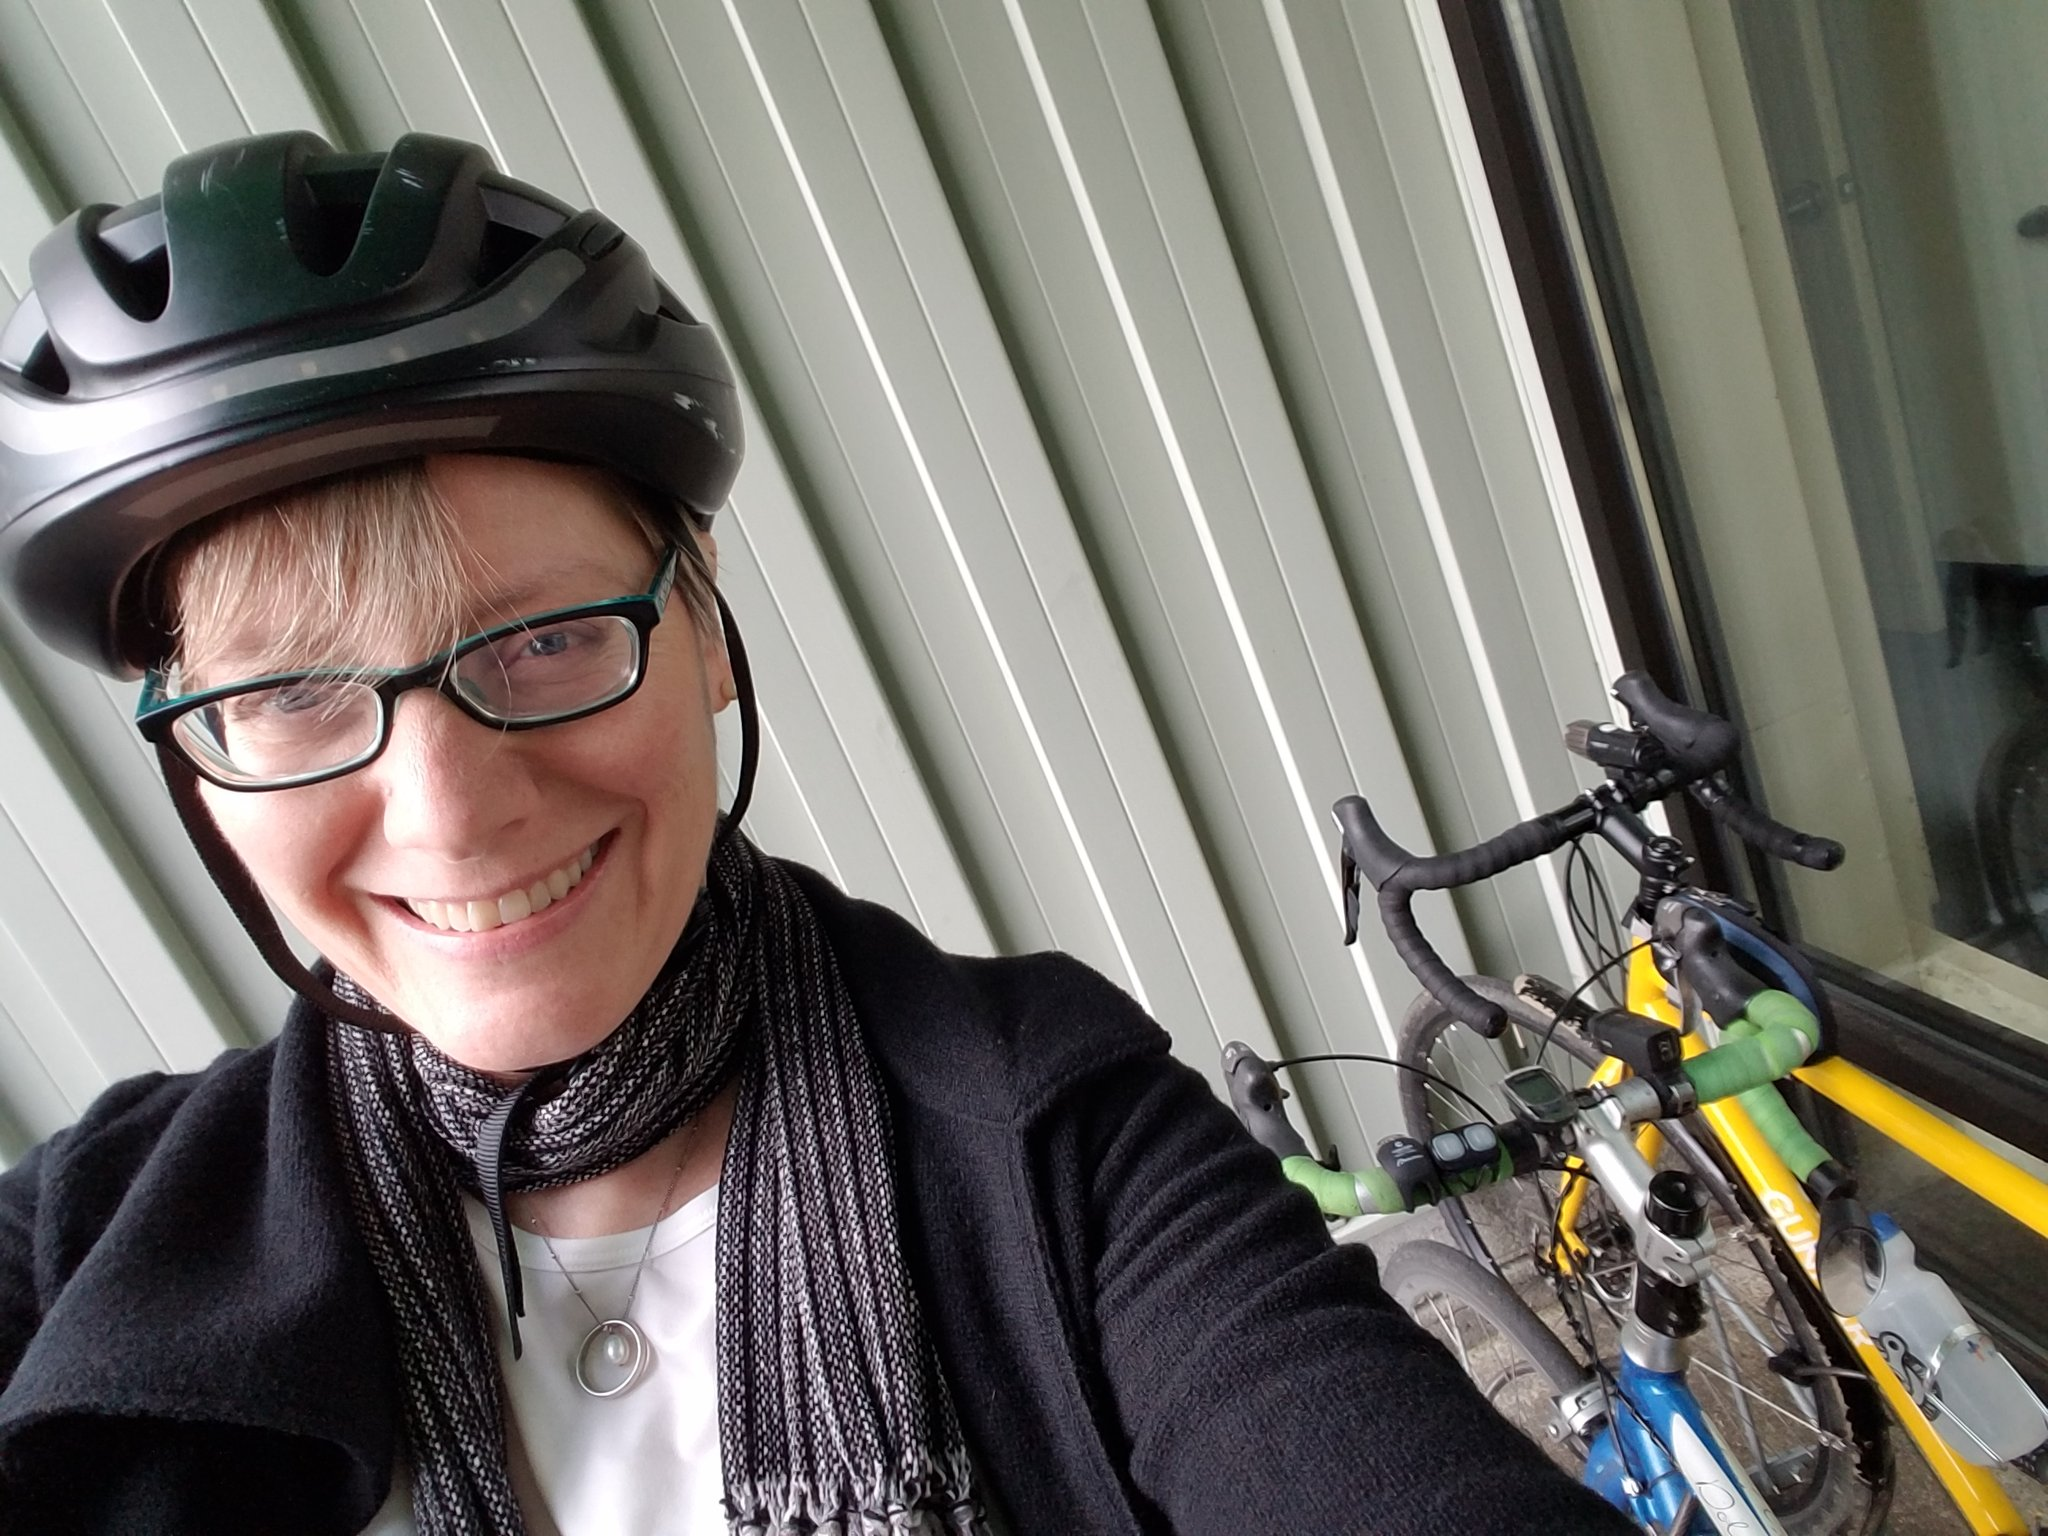 Errands by Bike Are a Breeze (and Sometimes Breezy): Errandonnee 2018